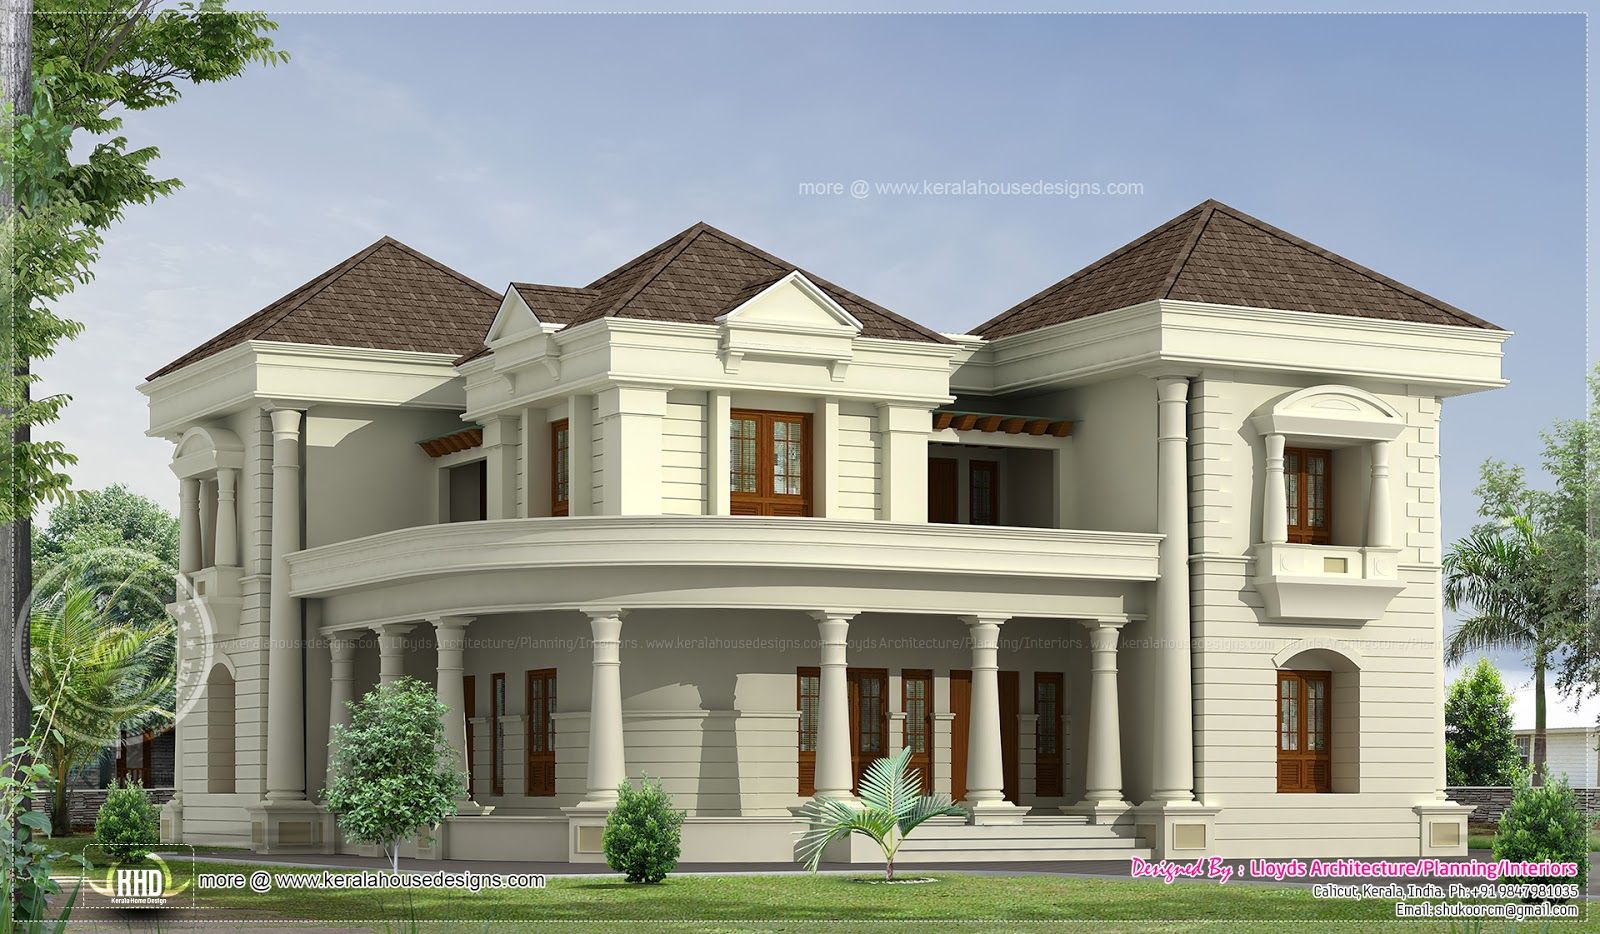 Modern bungalows bedroom luxurious bungalow floor plan for Bungalow house design